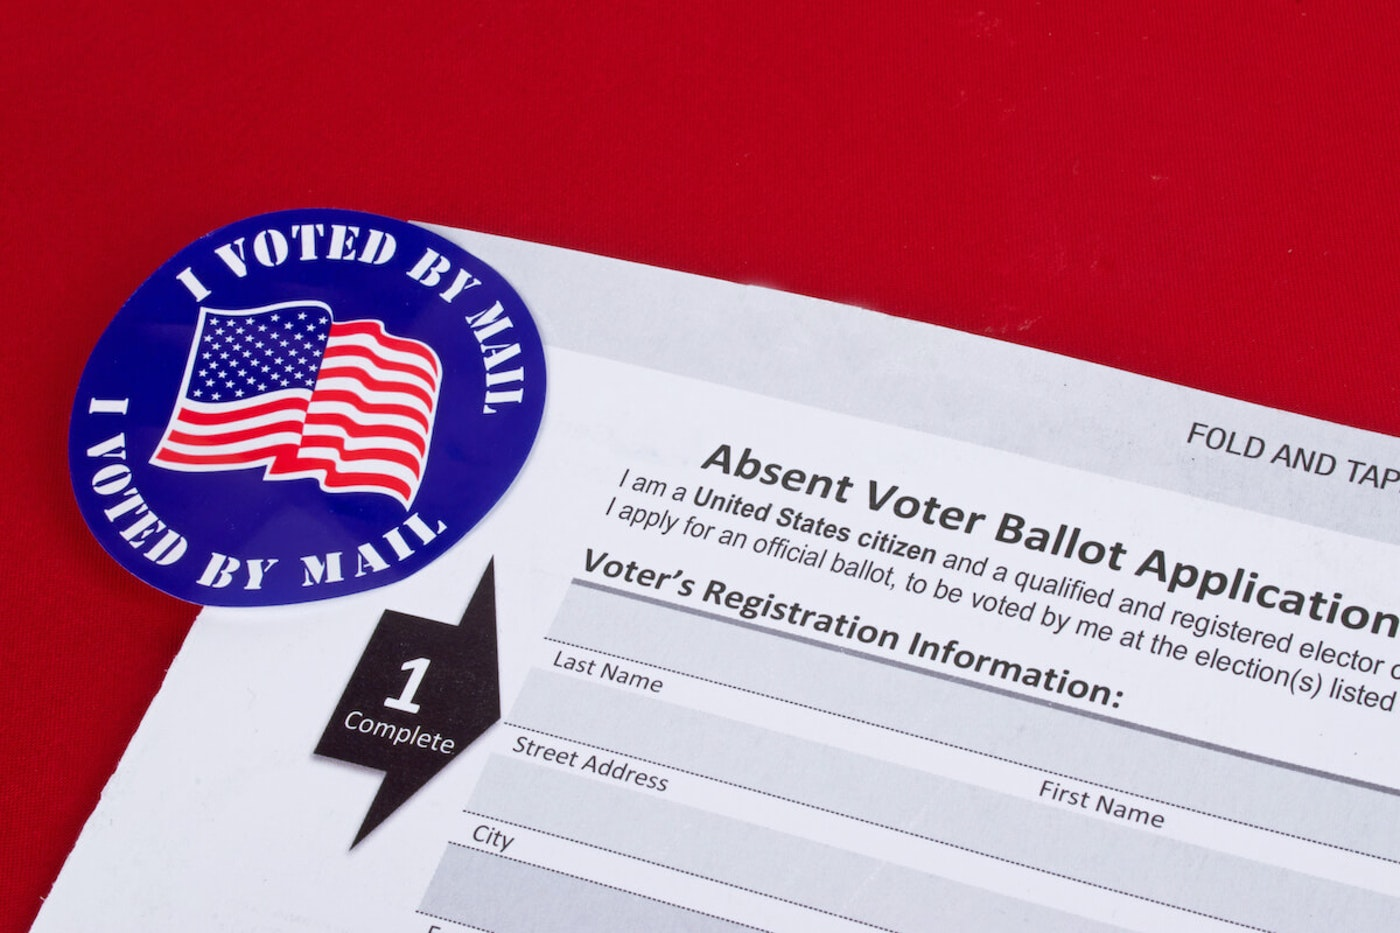 A record number of Wisconsinites voted by absentee ballot this election. (Shutterstock image)